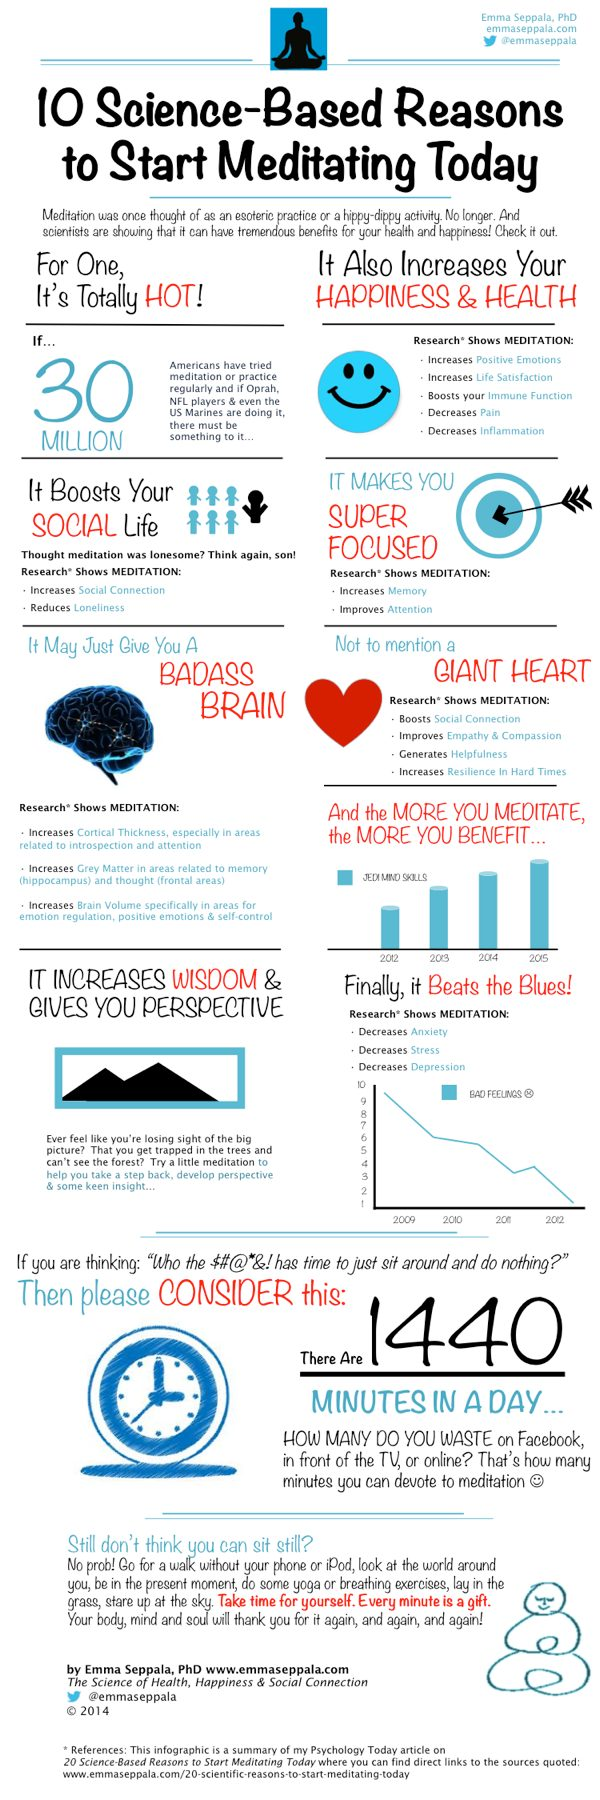 10 Science Based Reasons To Start Meditating Today INFOGRAPHIC